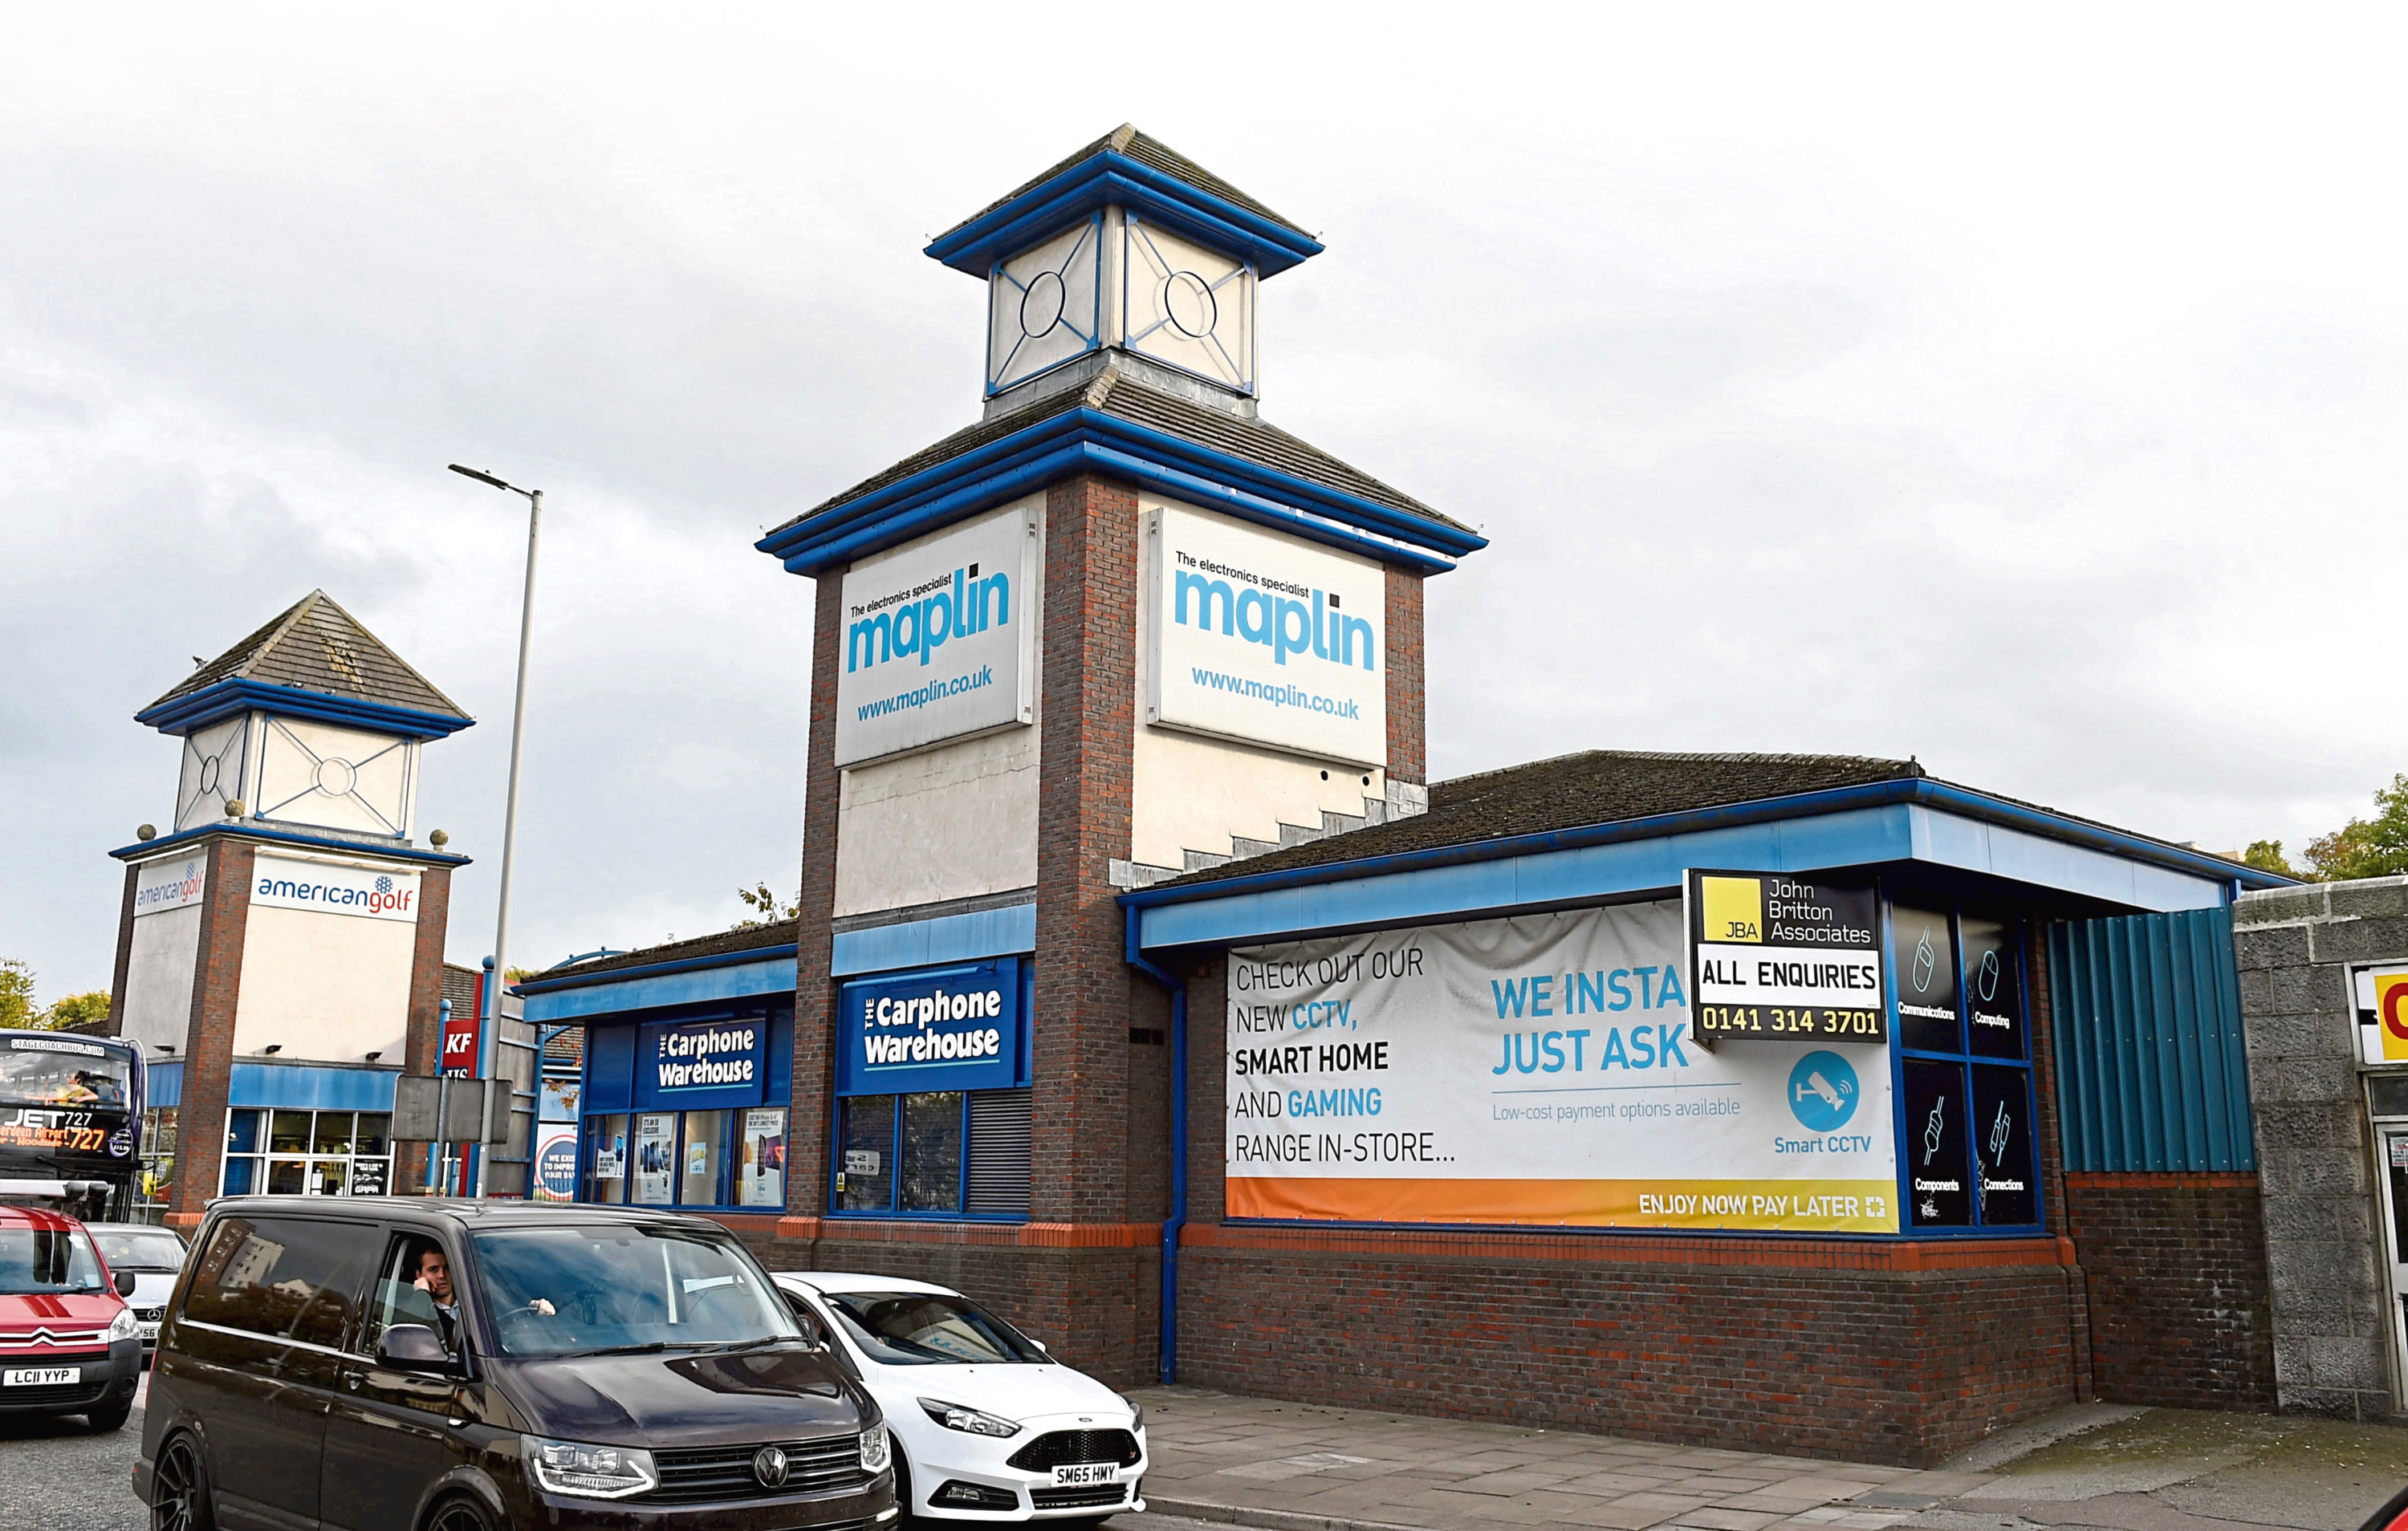 A demolition warrant has been submitted to Aberdeen City Council regarding the Maplin and Carphone Warehouse site